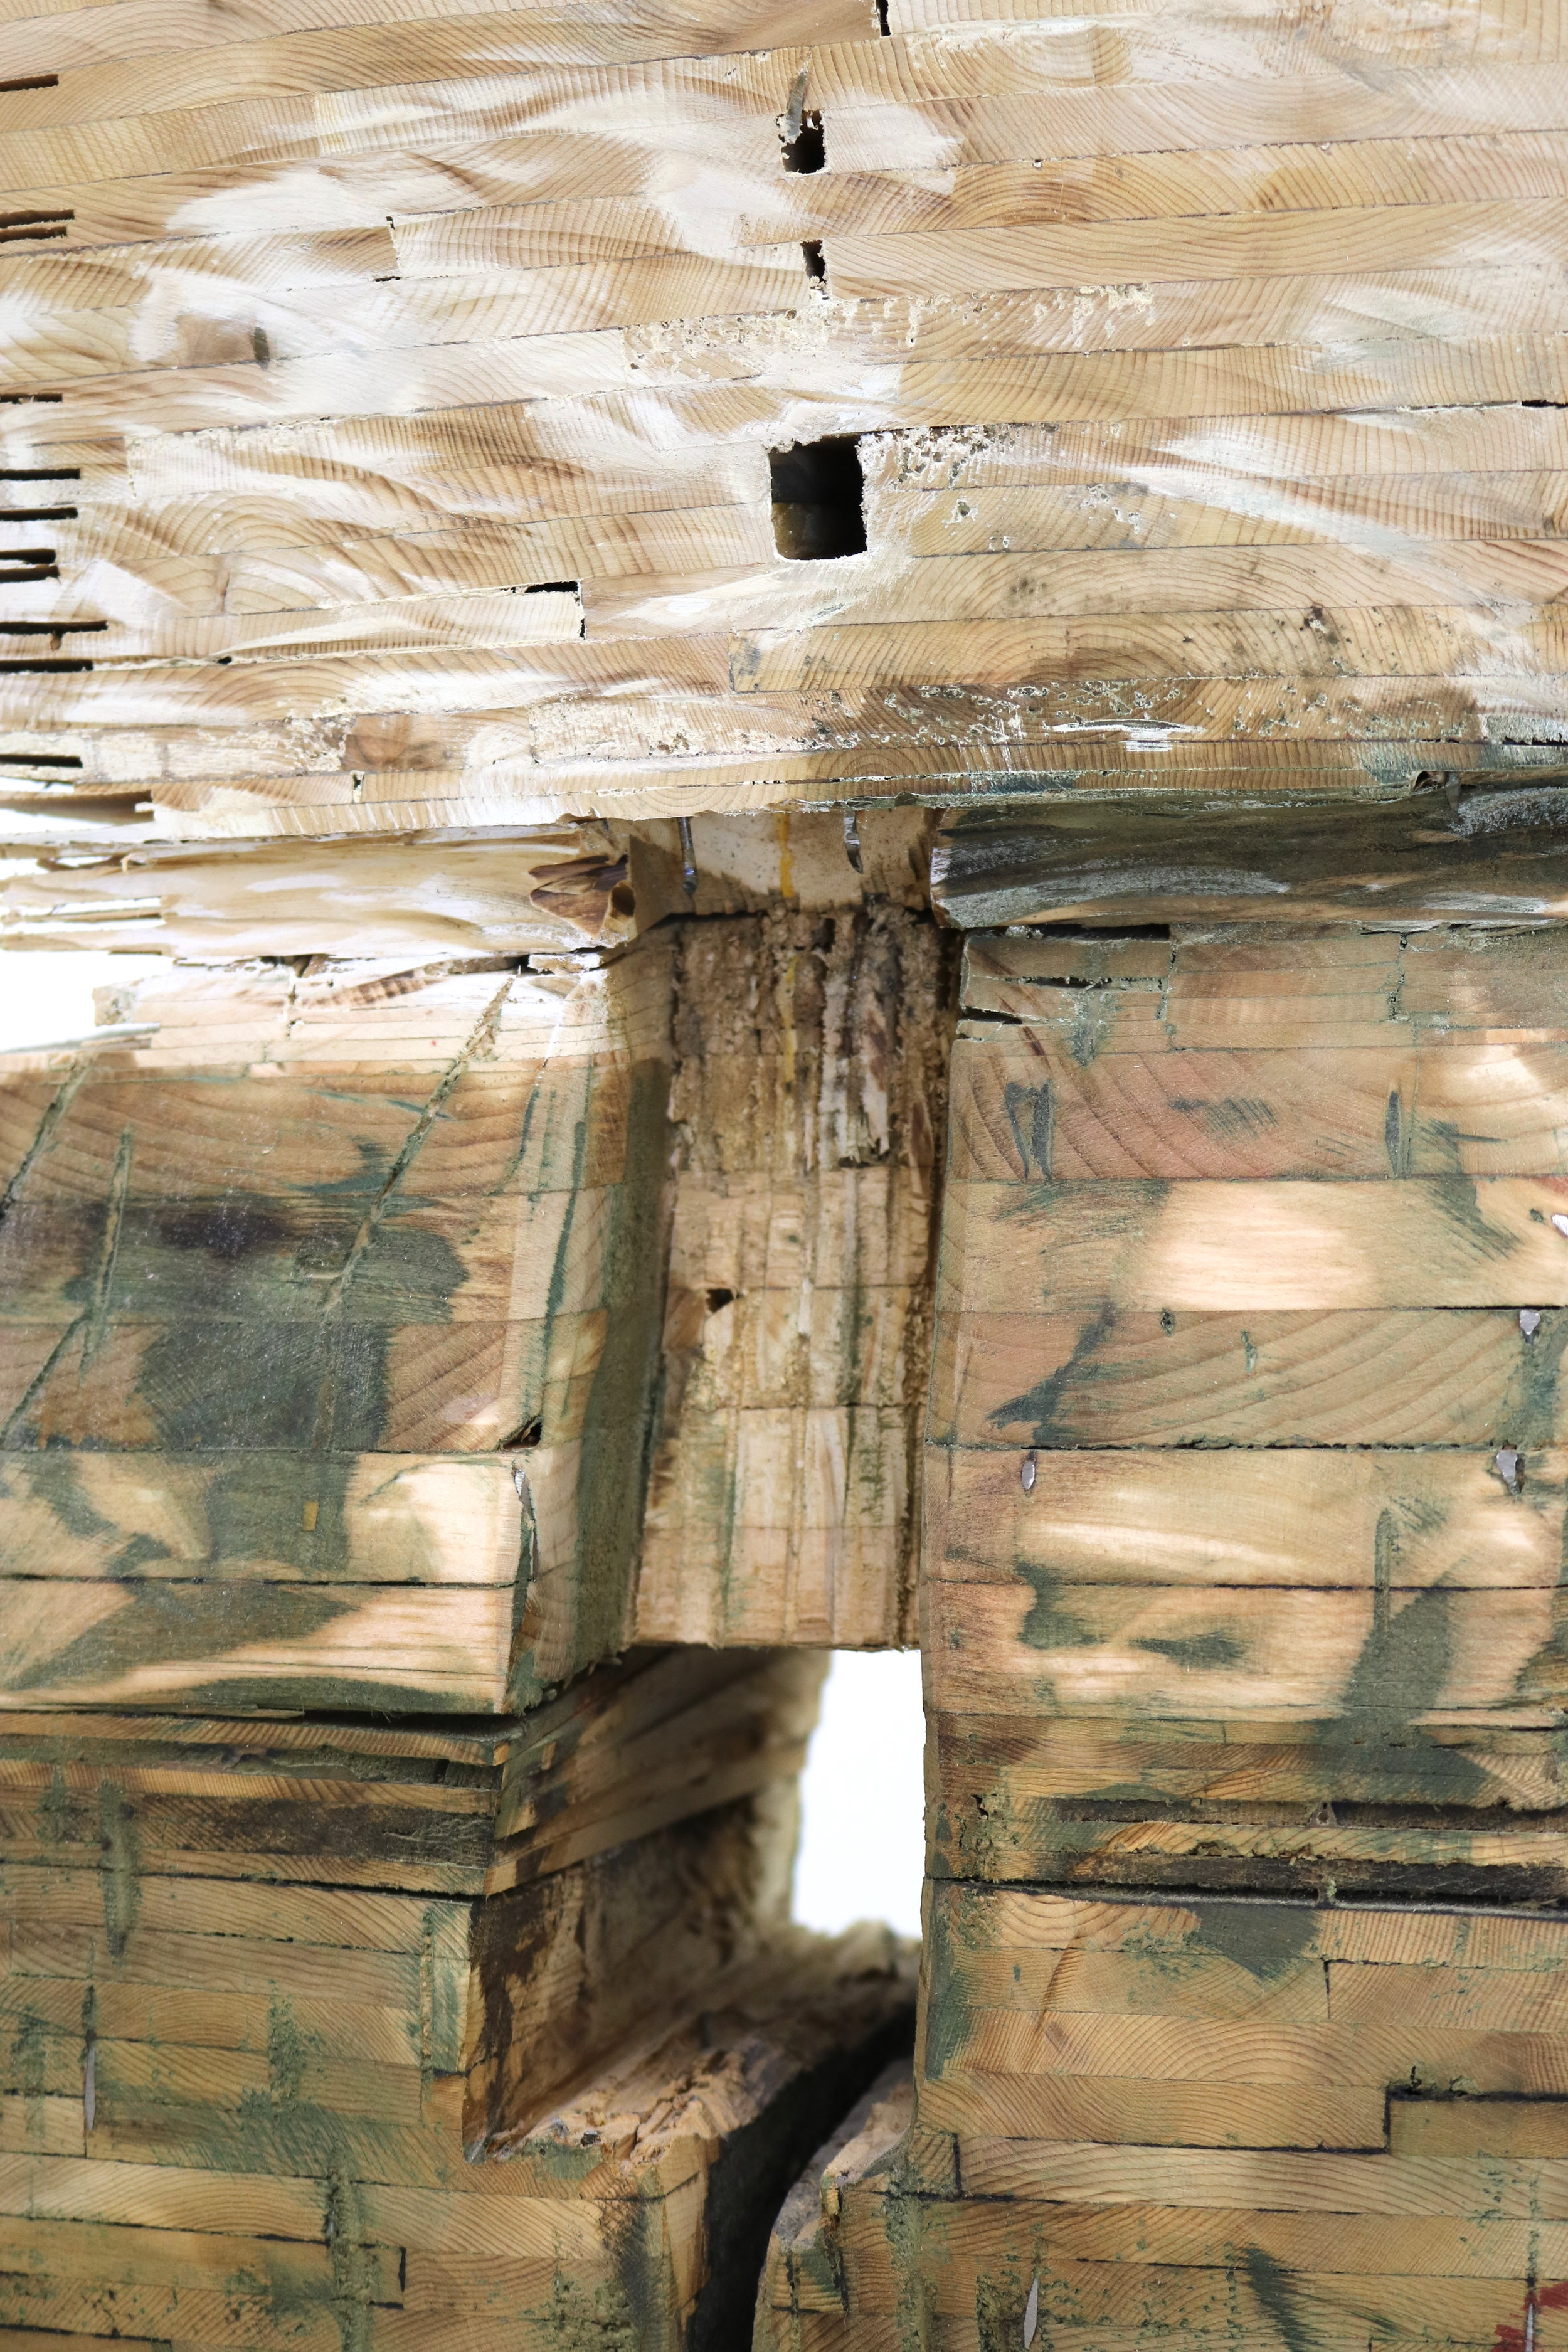 Leslie Zelamsky,  Point of Departure 5 , detail, Pine, cedar, roof shingles, pigment, 63.5 x 23 x 22